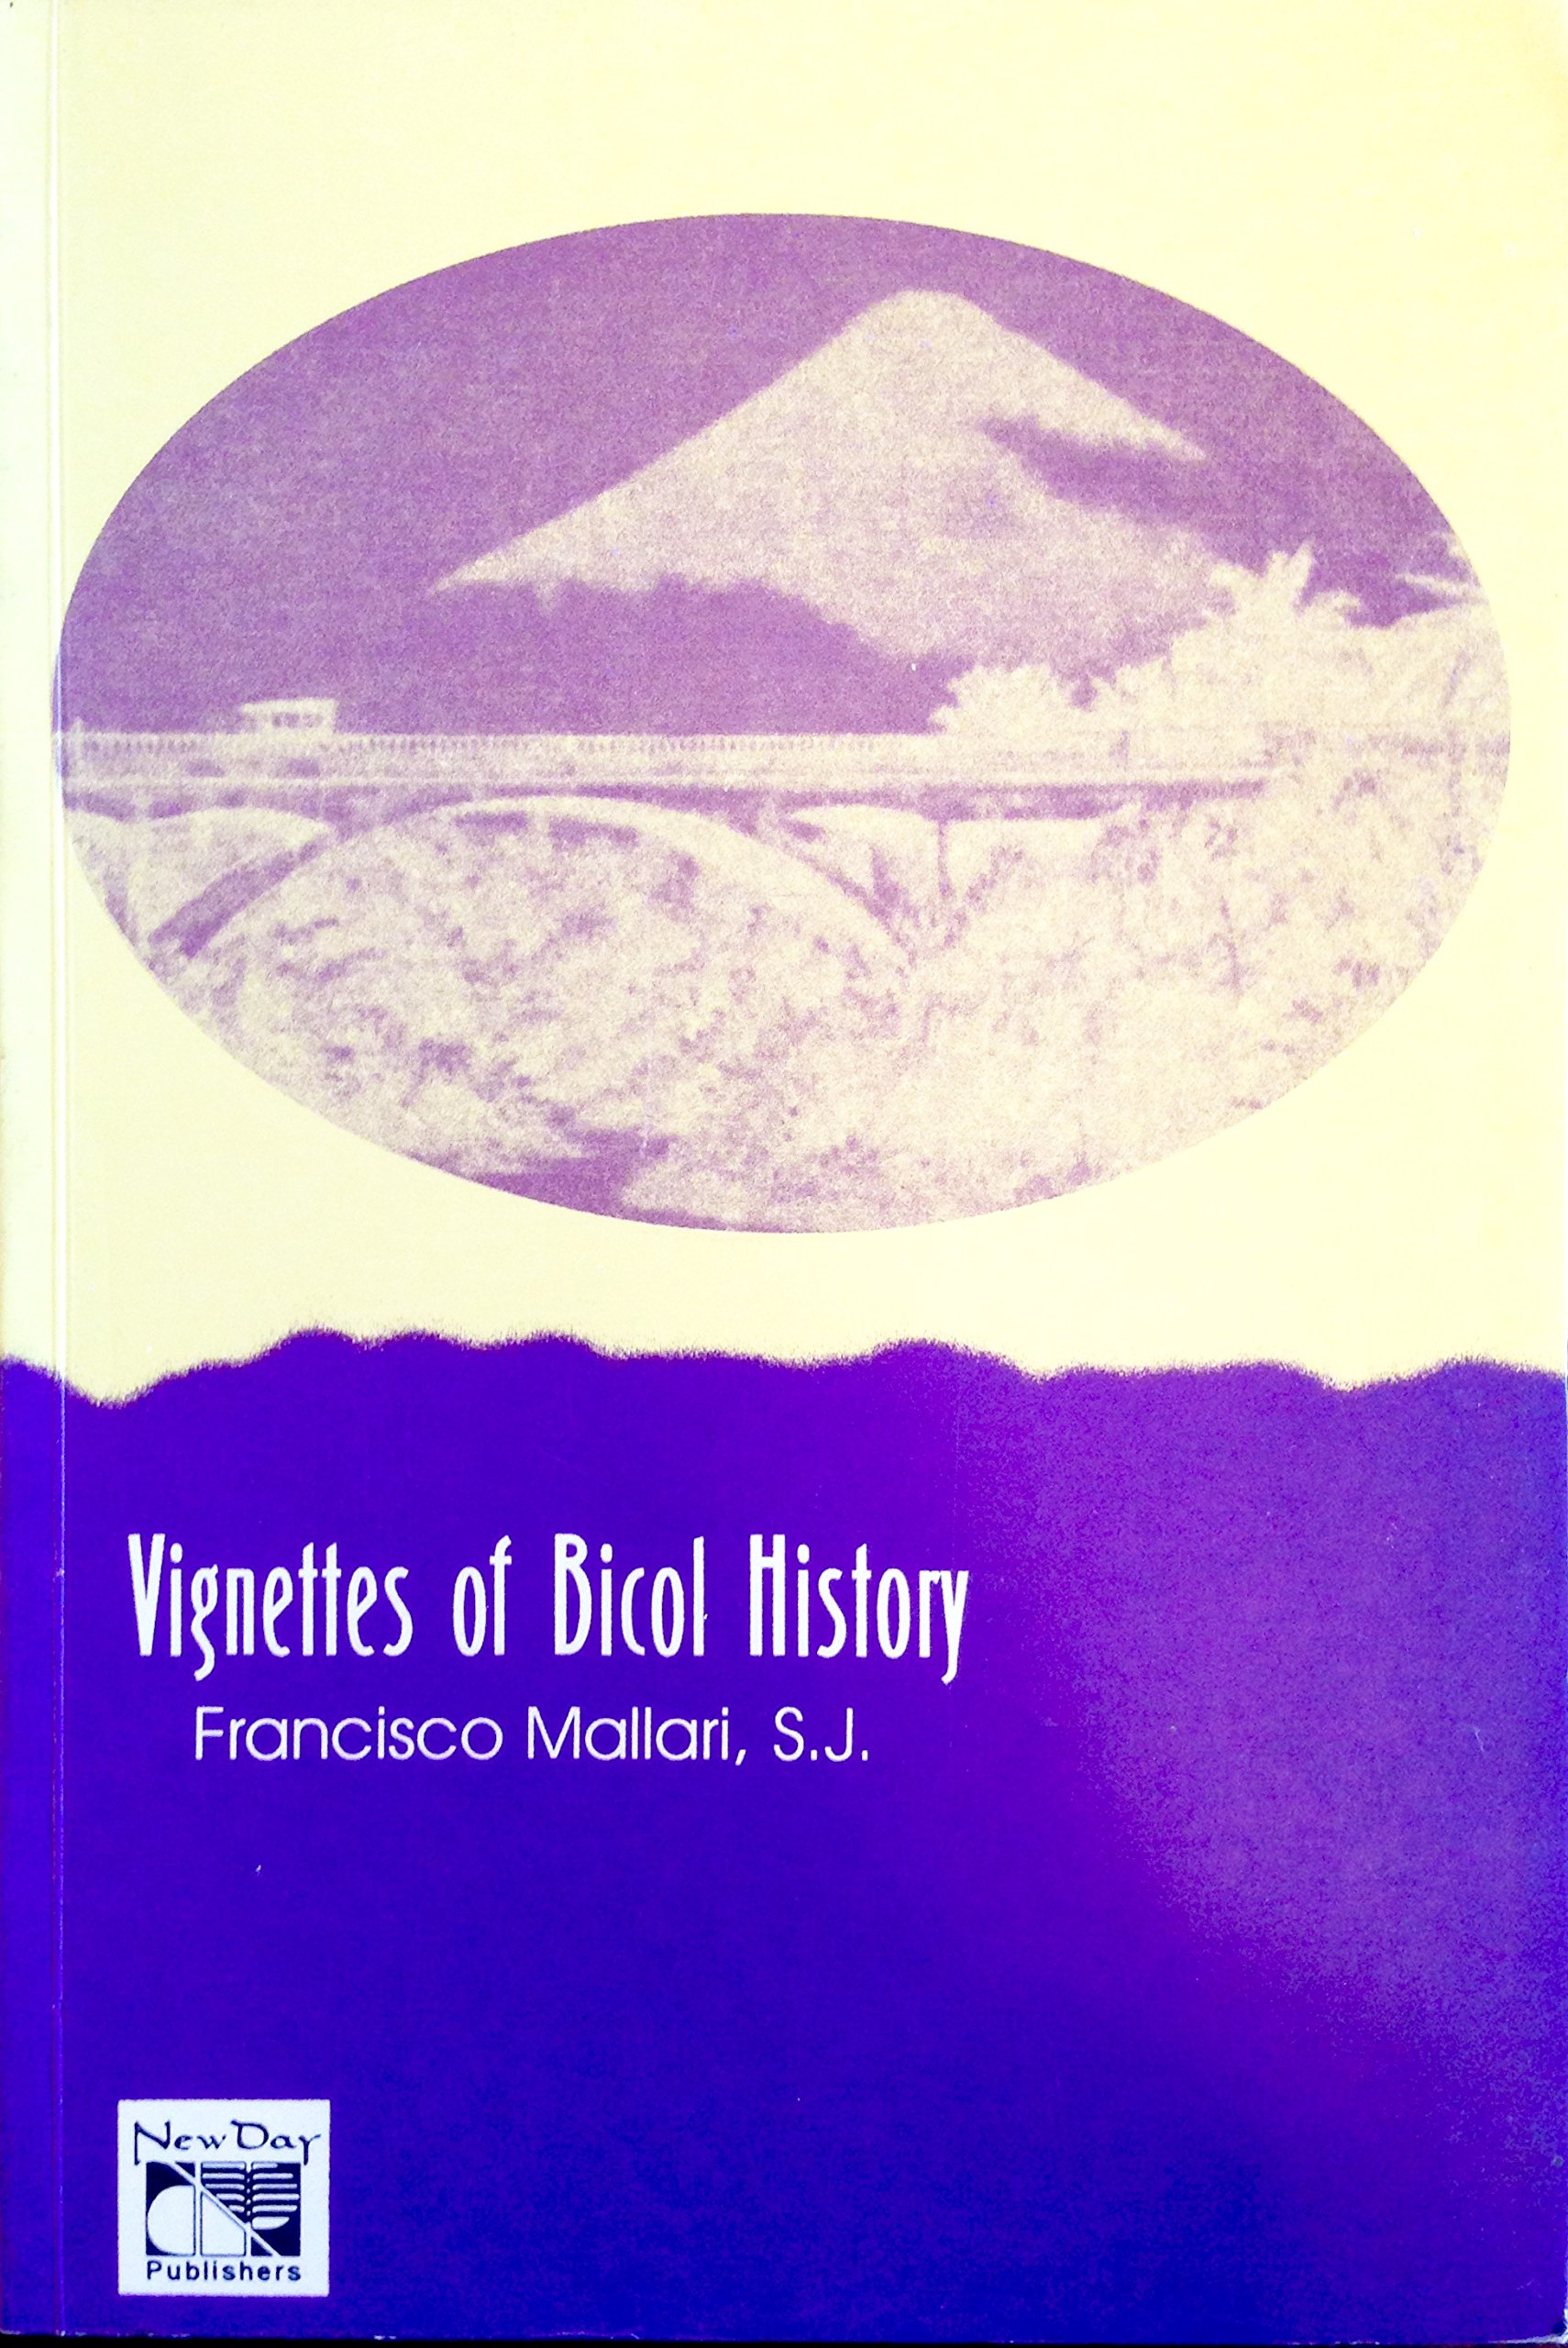 Vignetts of Bicol History: Francisco Mallari: 9789711010140: Amazon